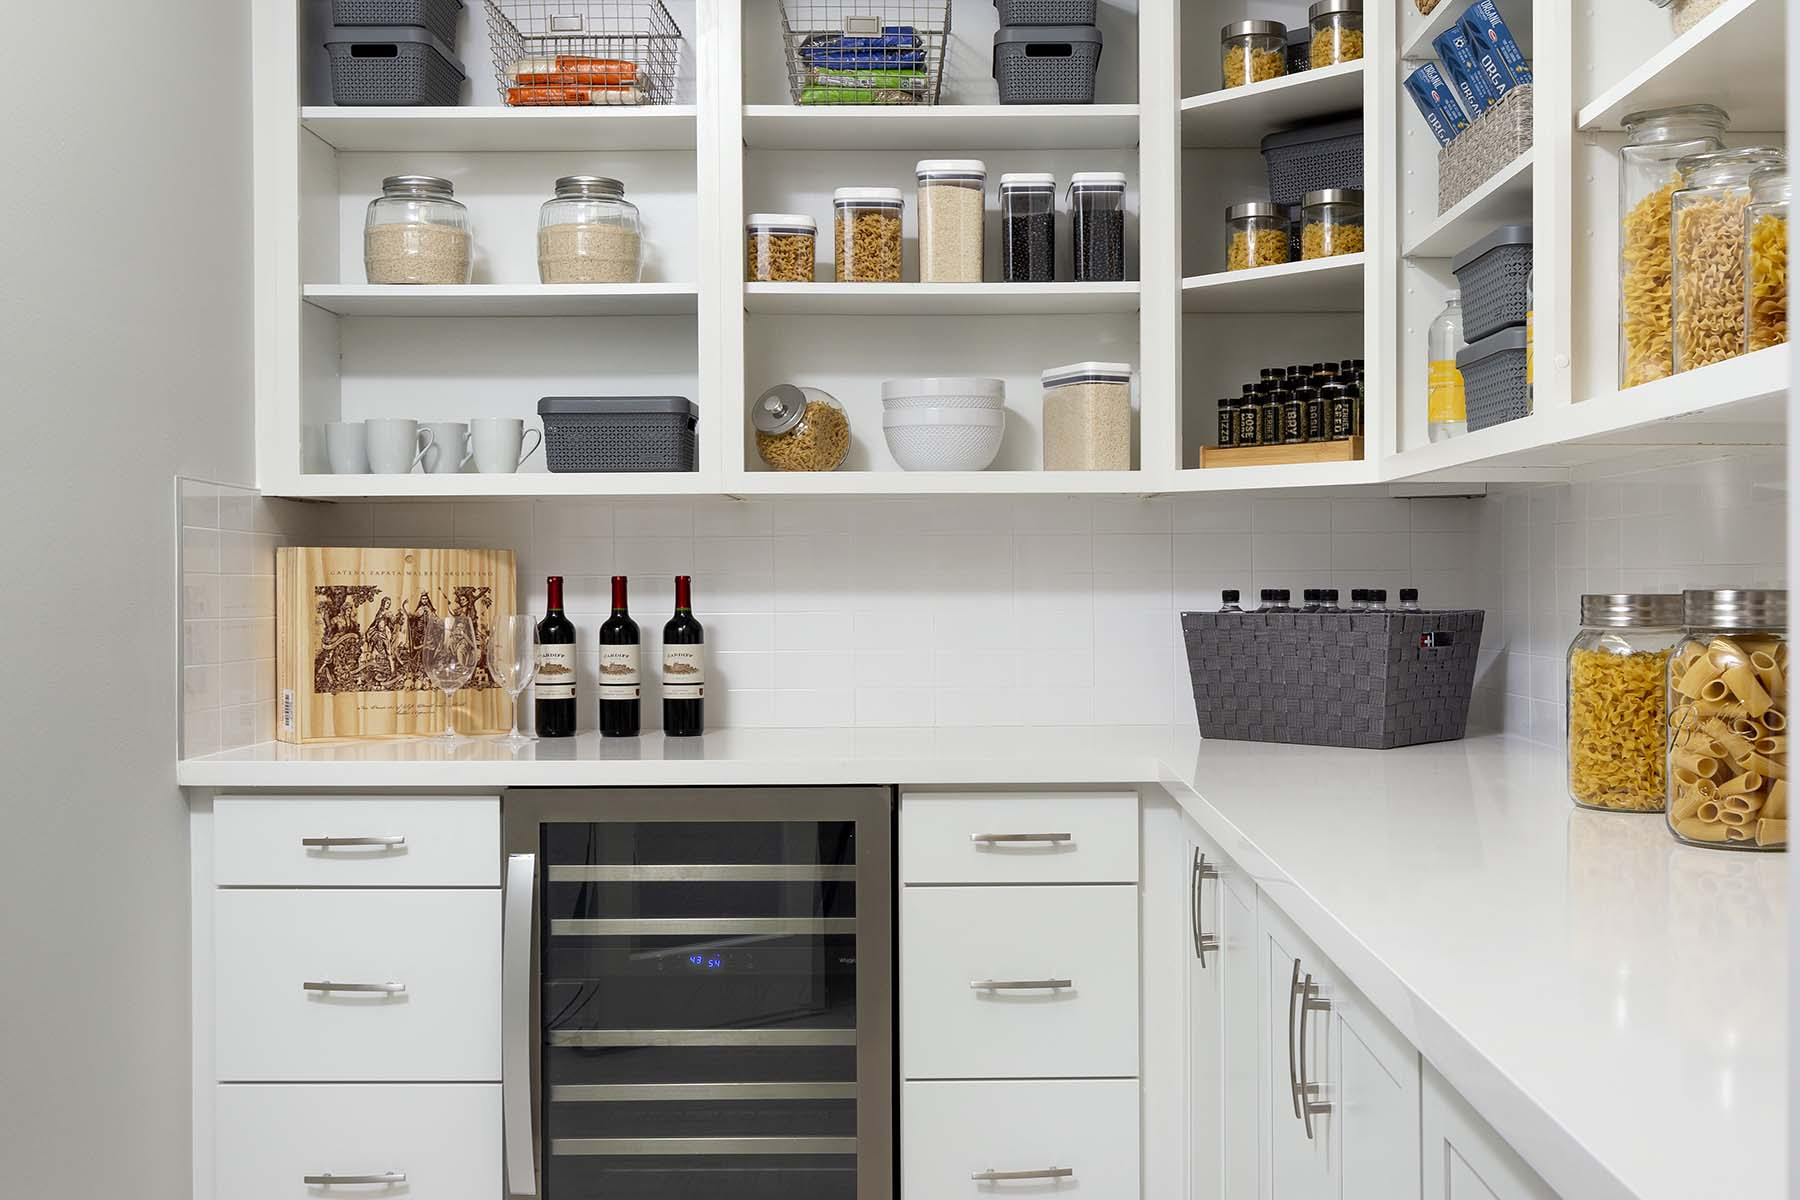 Rowan Plan Pantry at Tradition - Manderlie in Port St. Lucie Florida by Mattamy Homes